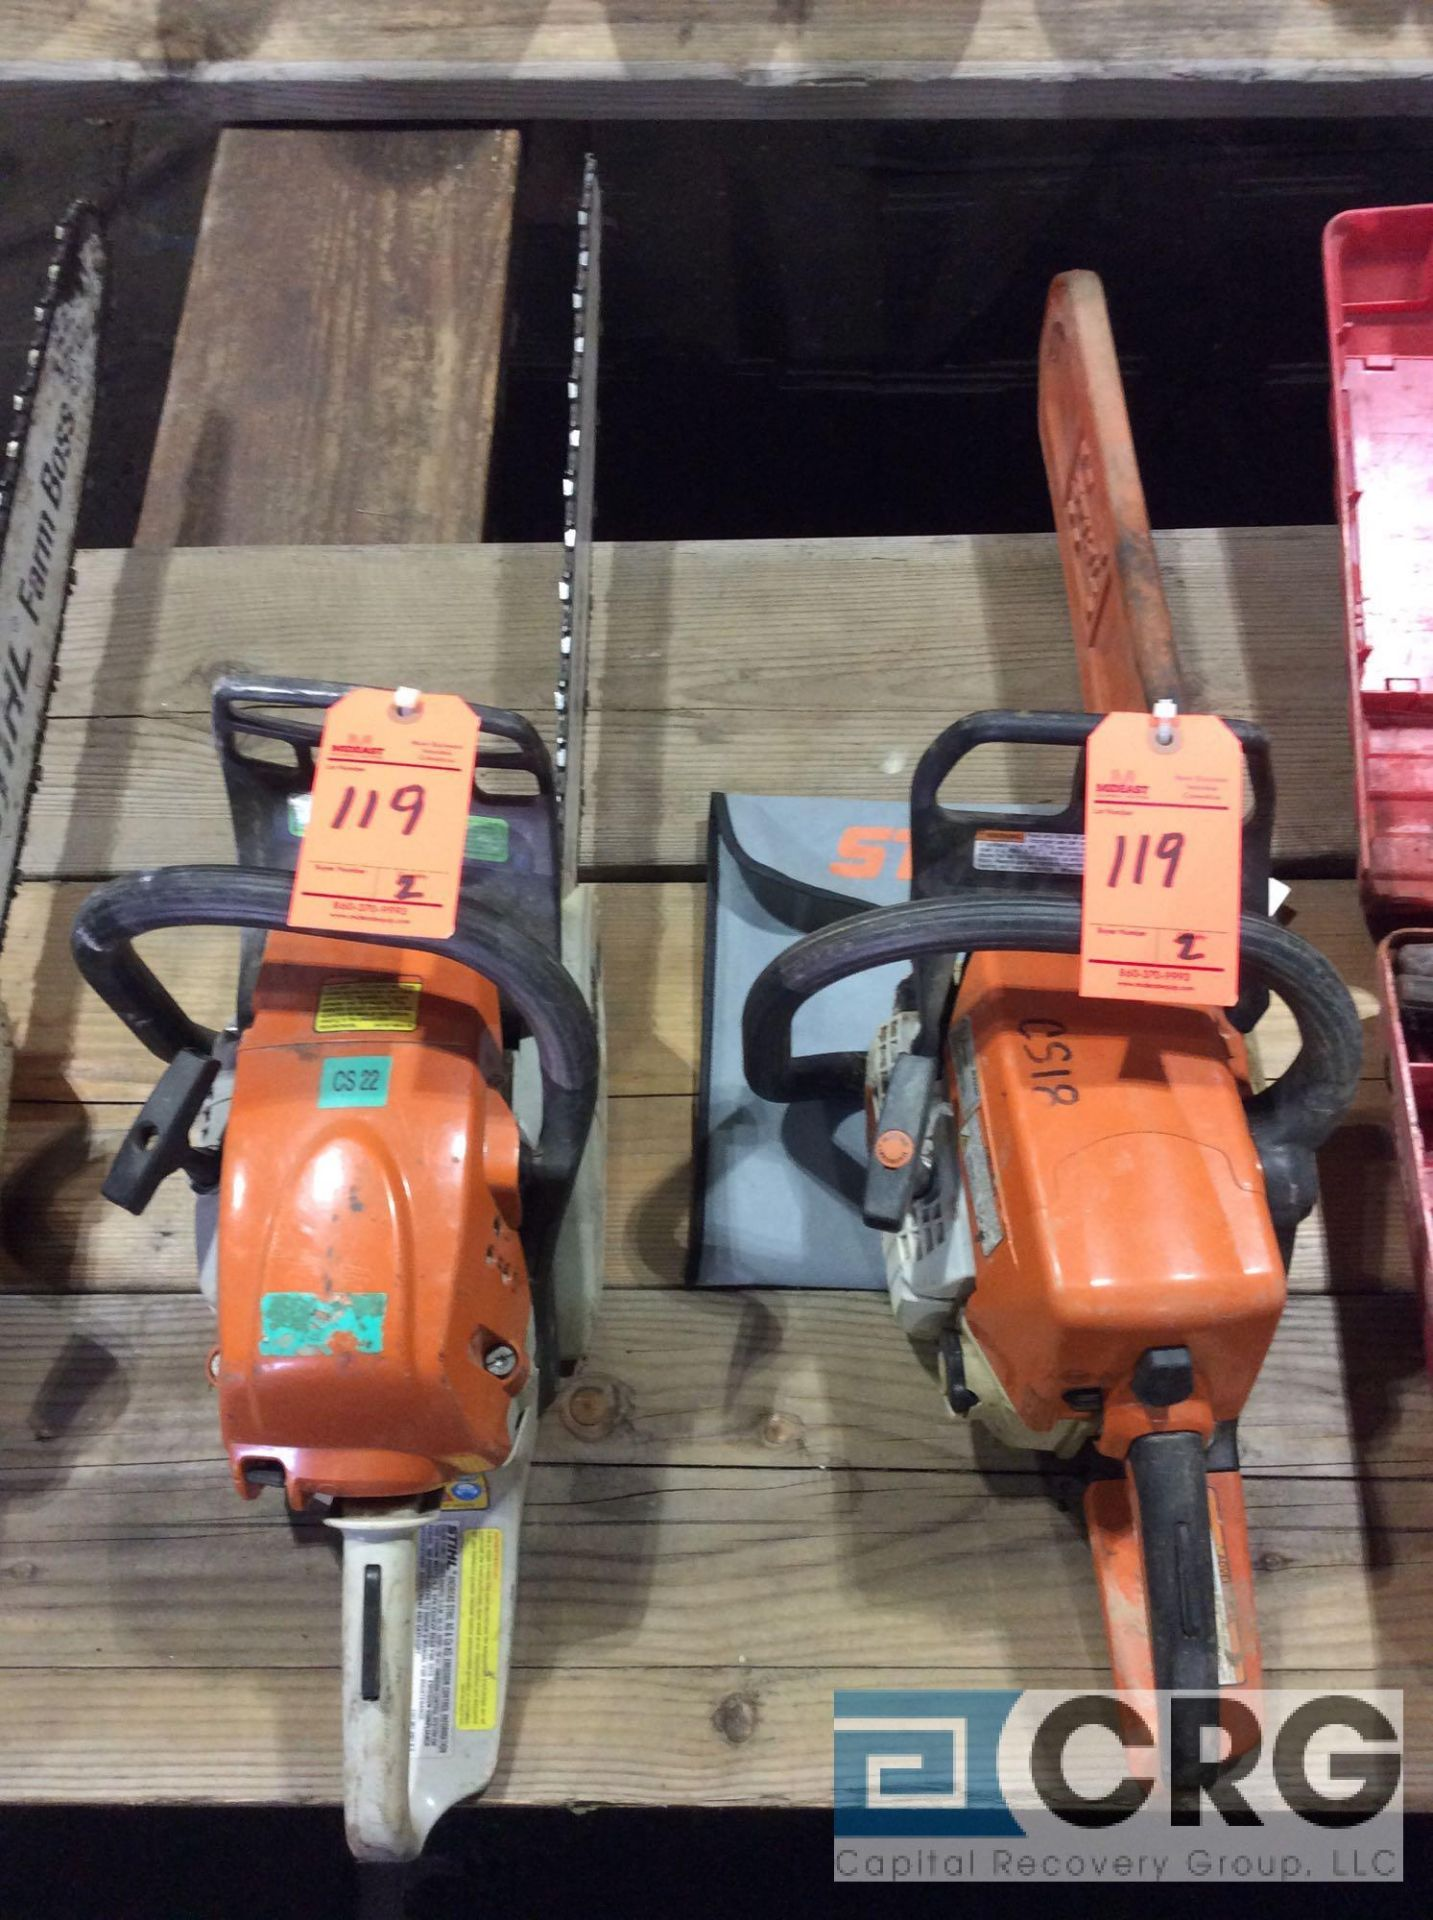 Lot 119 - Lot of (2) asst Stihl gas chain saws